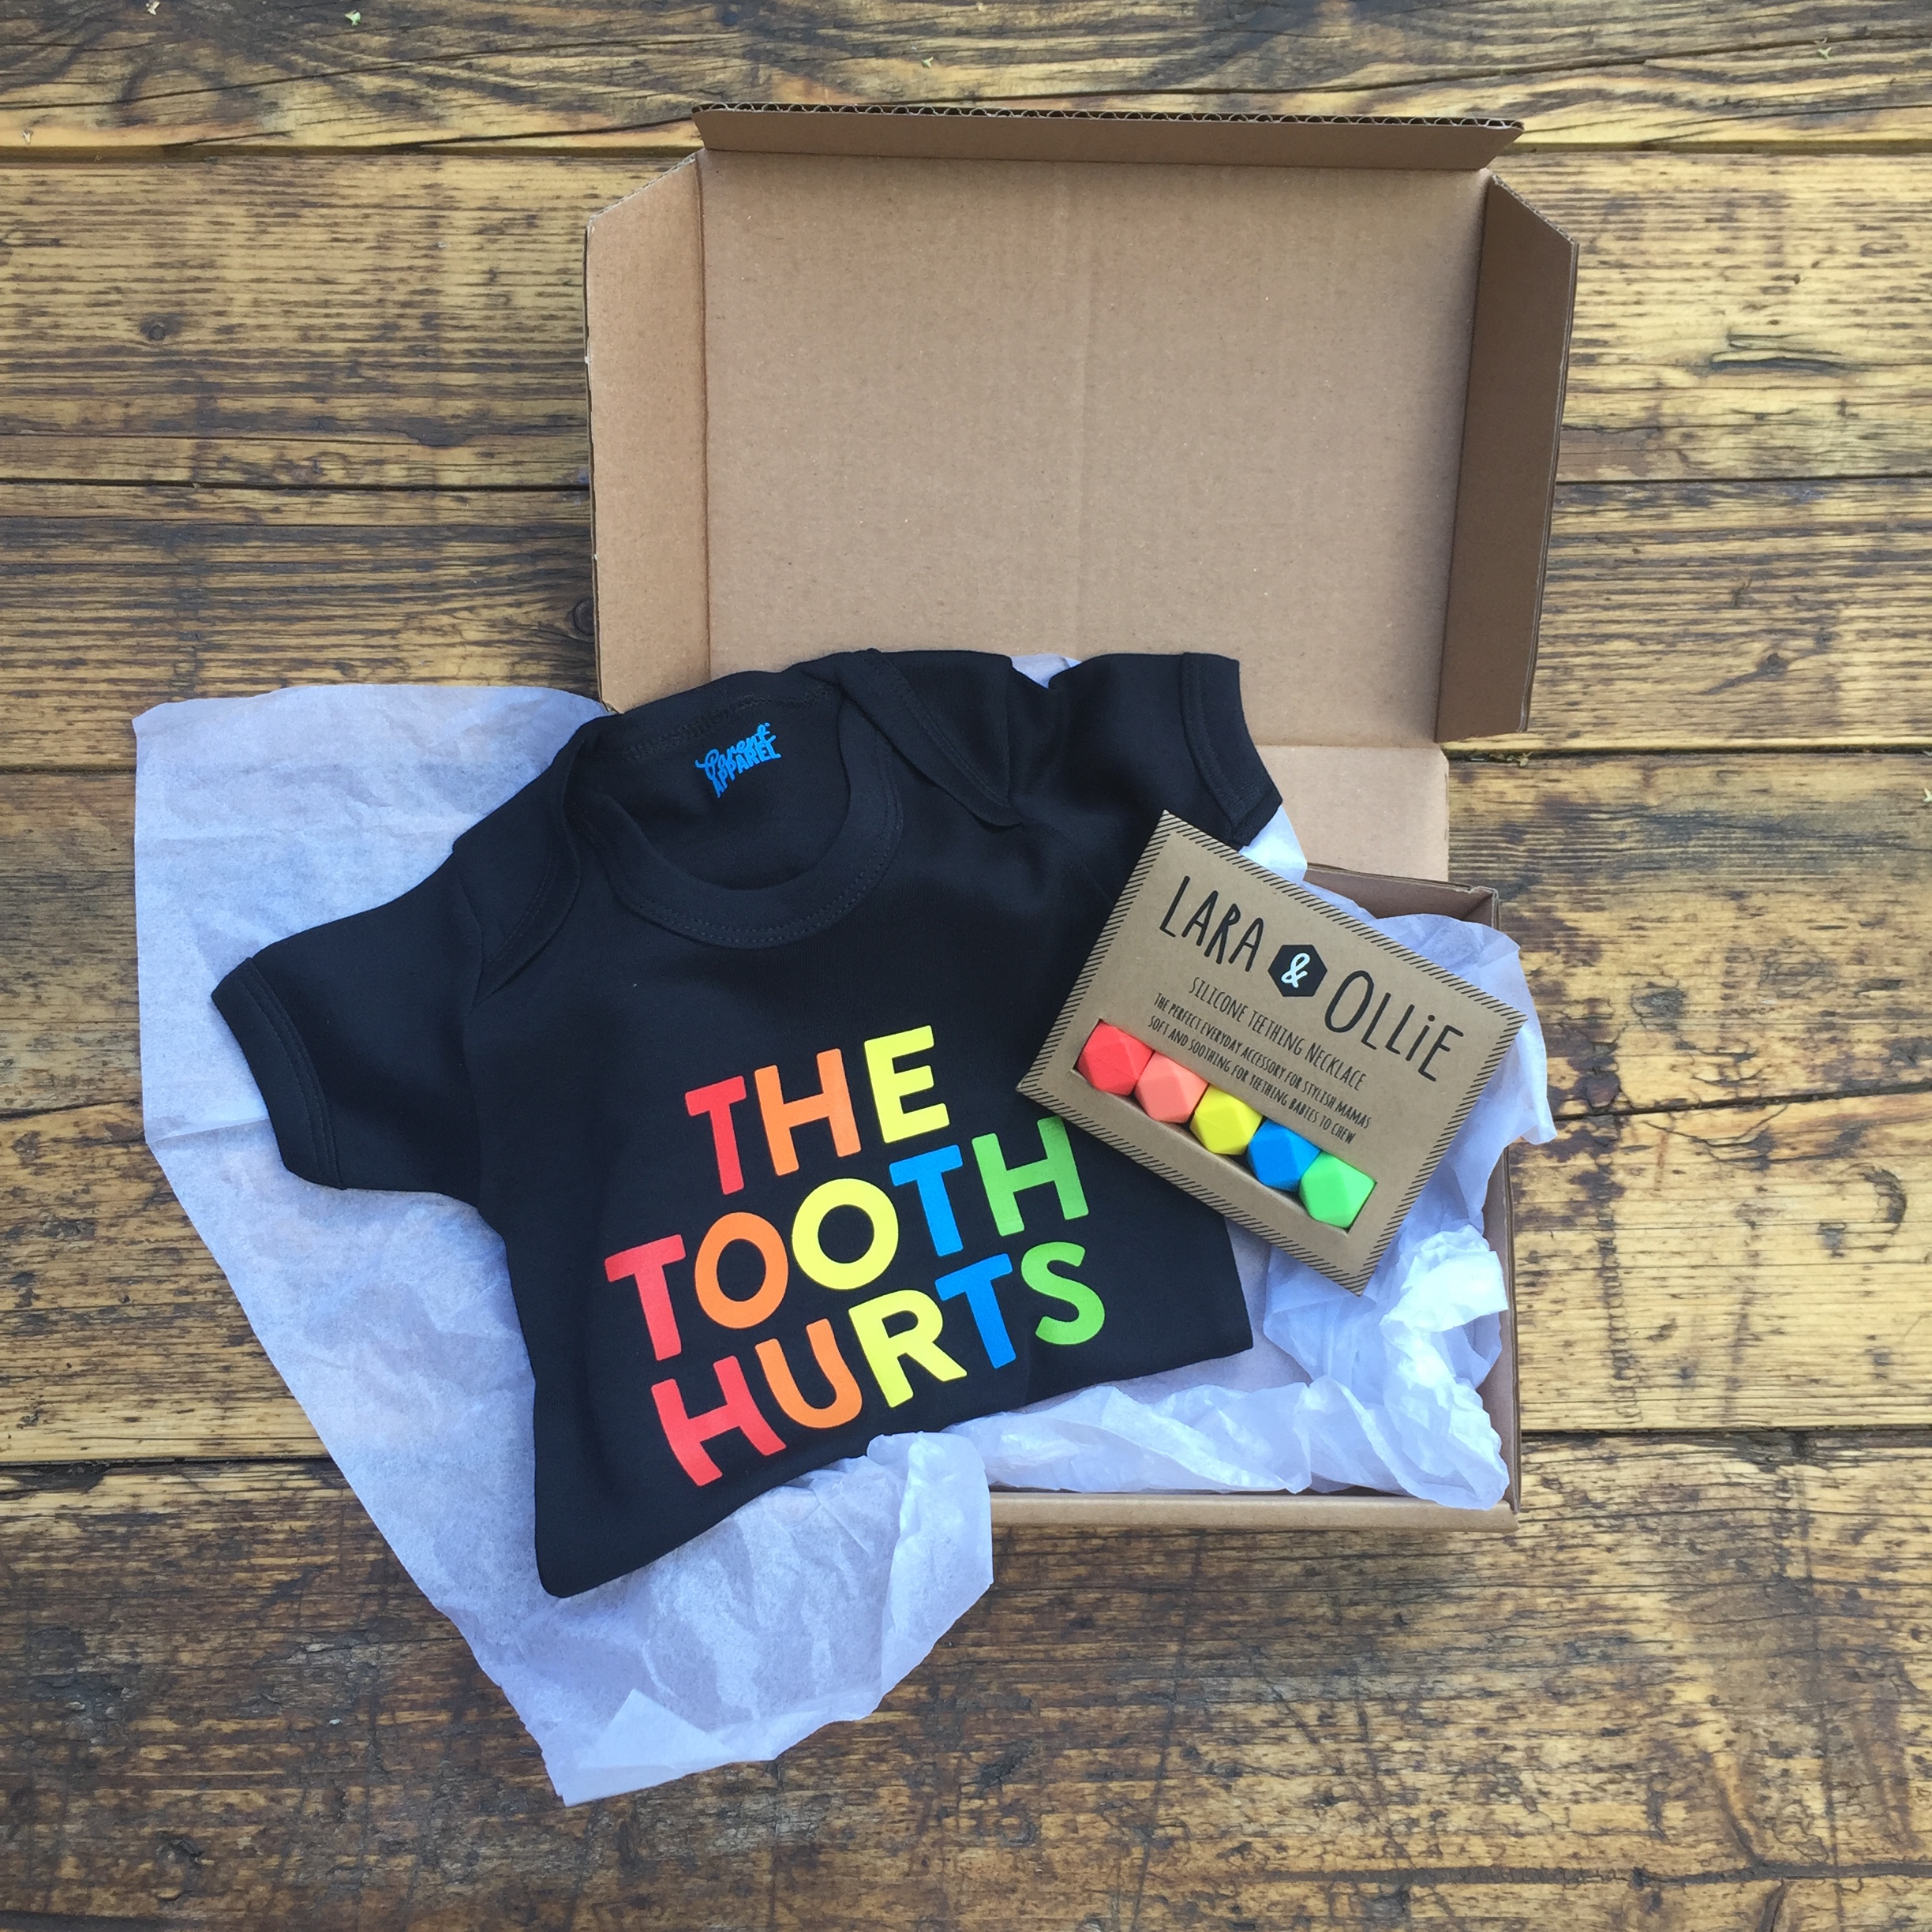 Lara and Ollie silicone teething necklace in collaboration with Parent Apparel gift box